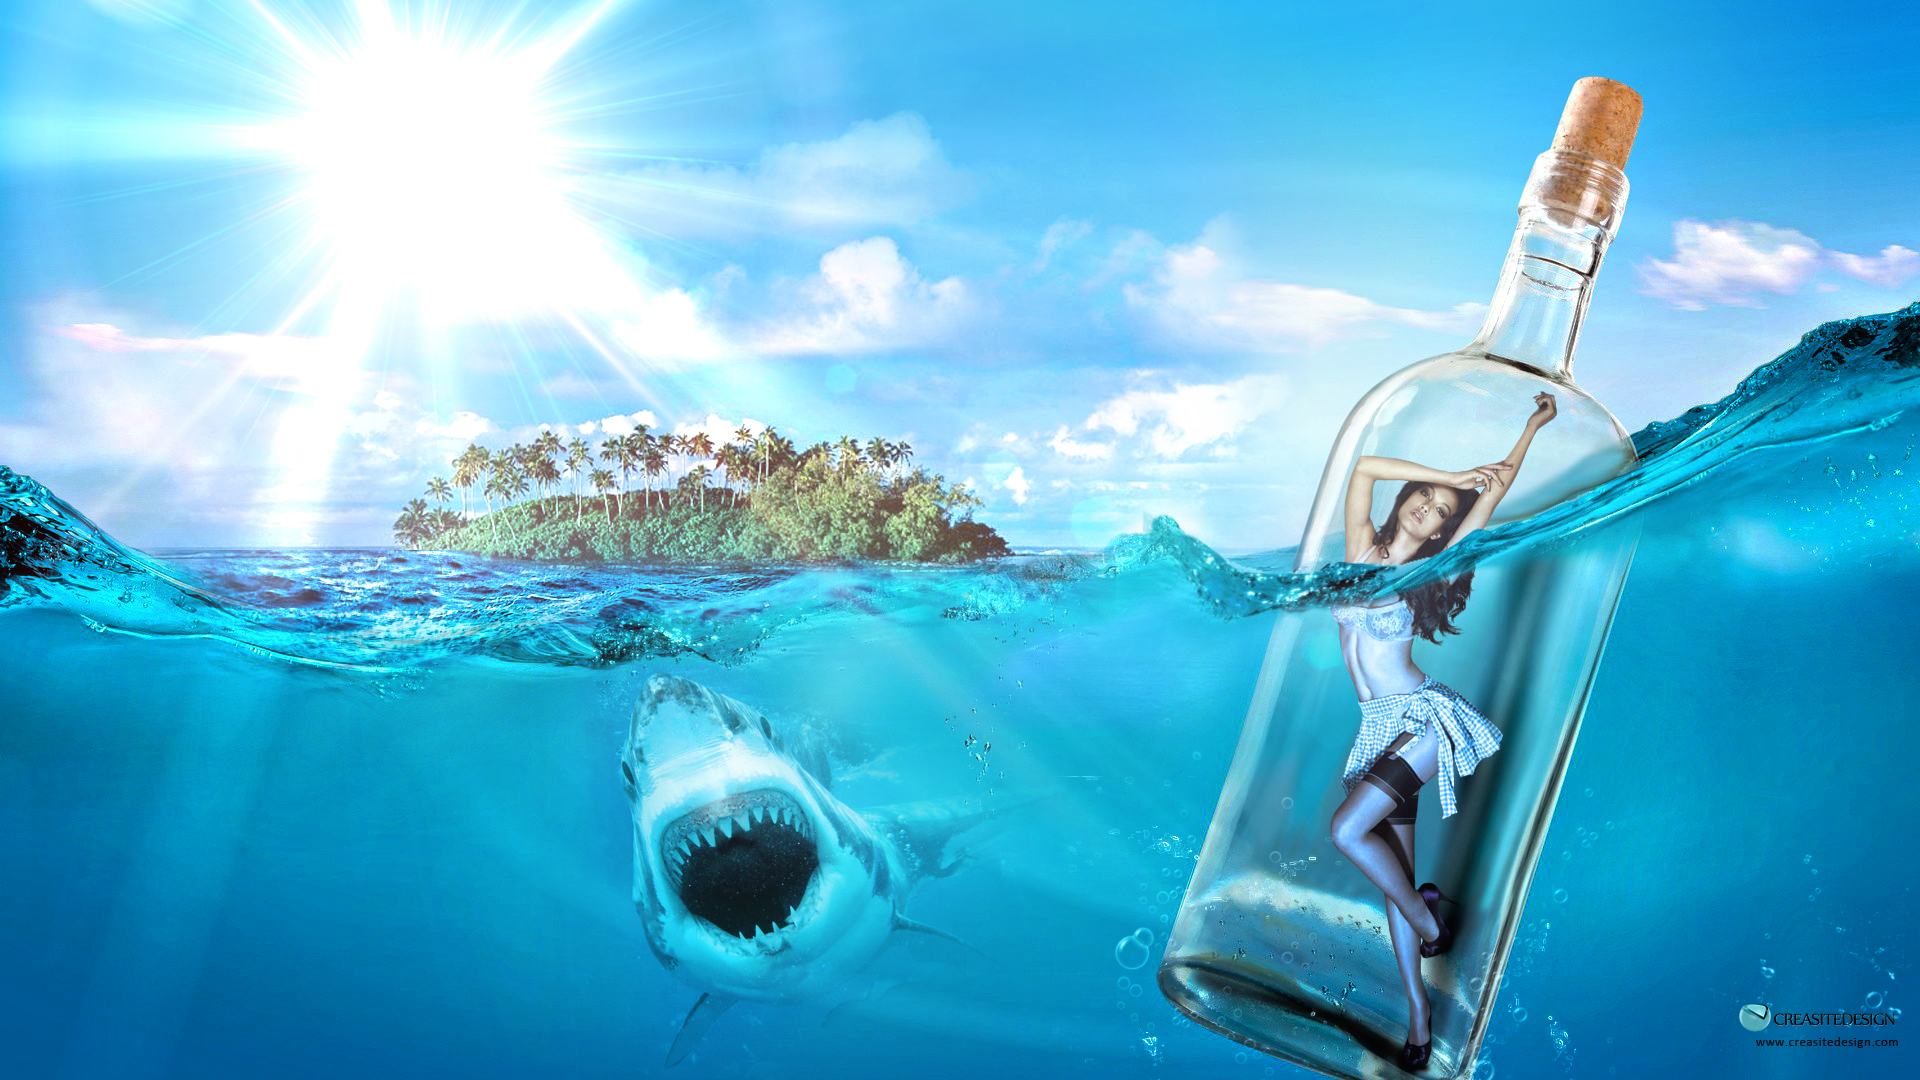 Girl In Water Bottle On Island ArtWork Wallpaper in high Quality Water 1920x1080